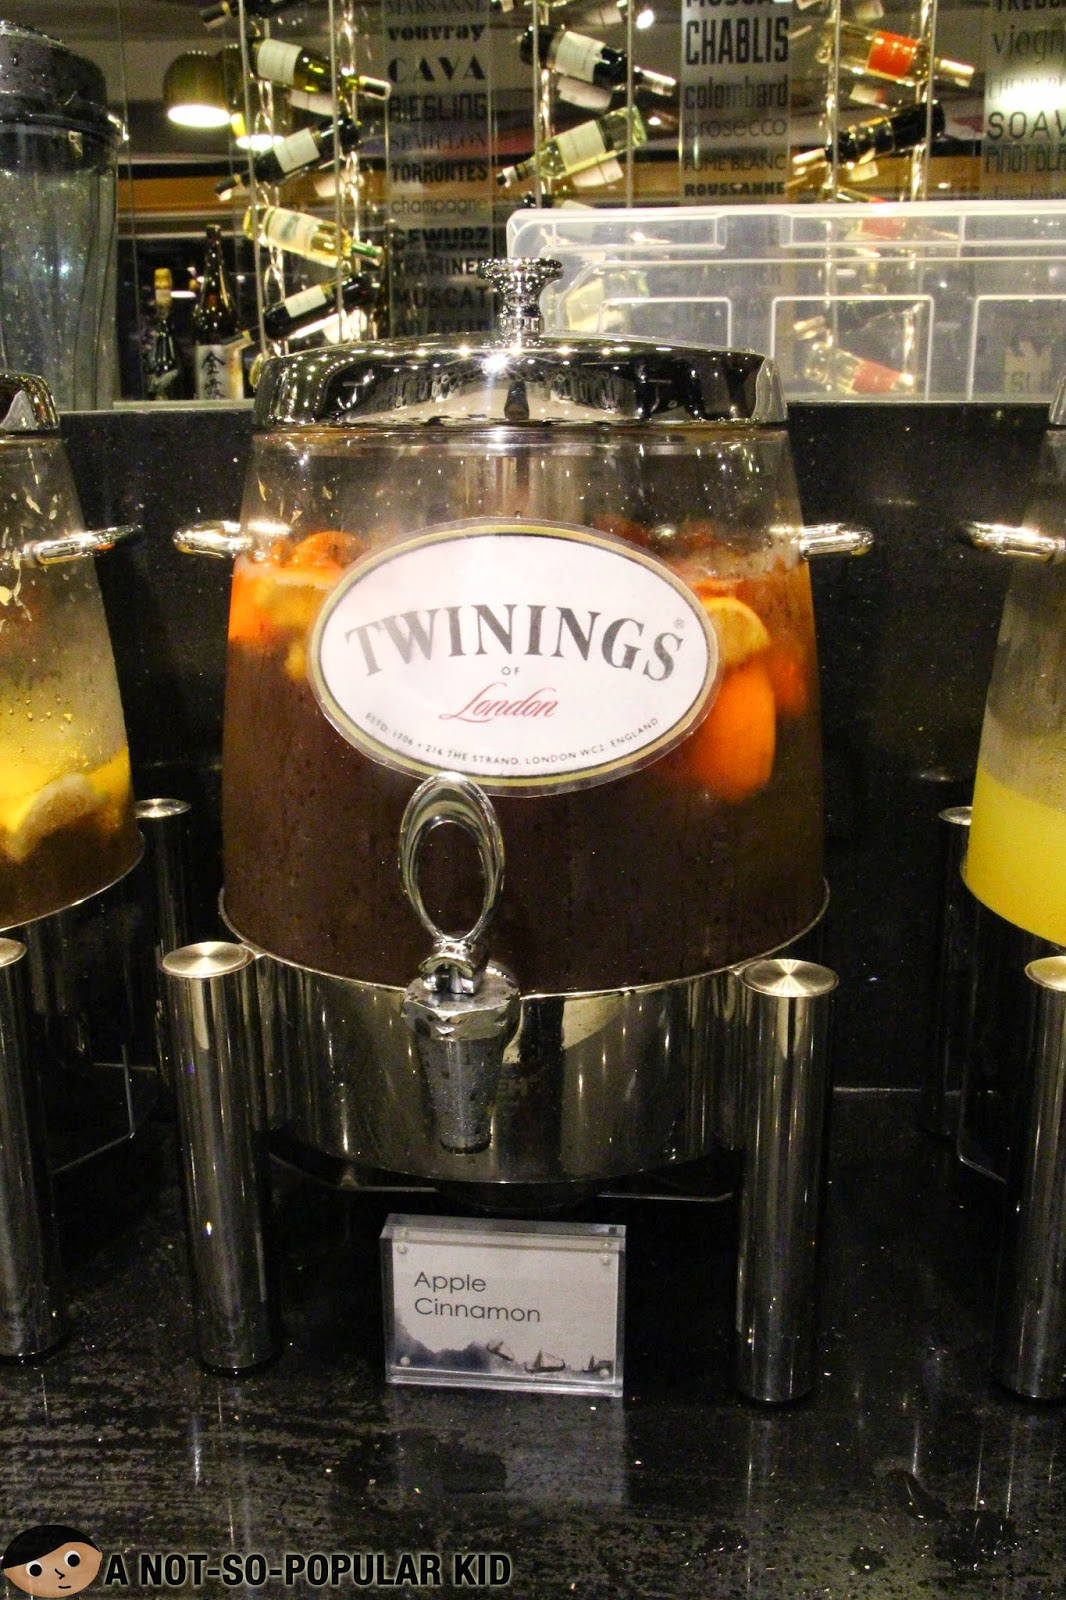 Twinings Iced Tea with Apple Cinnamon in Vikings